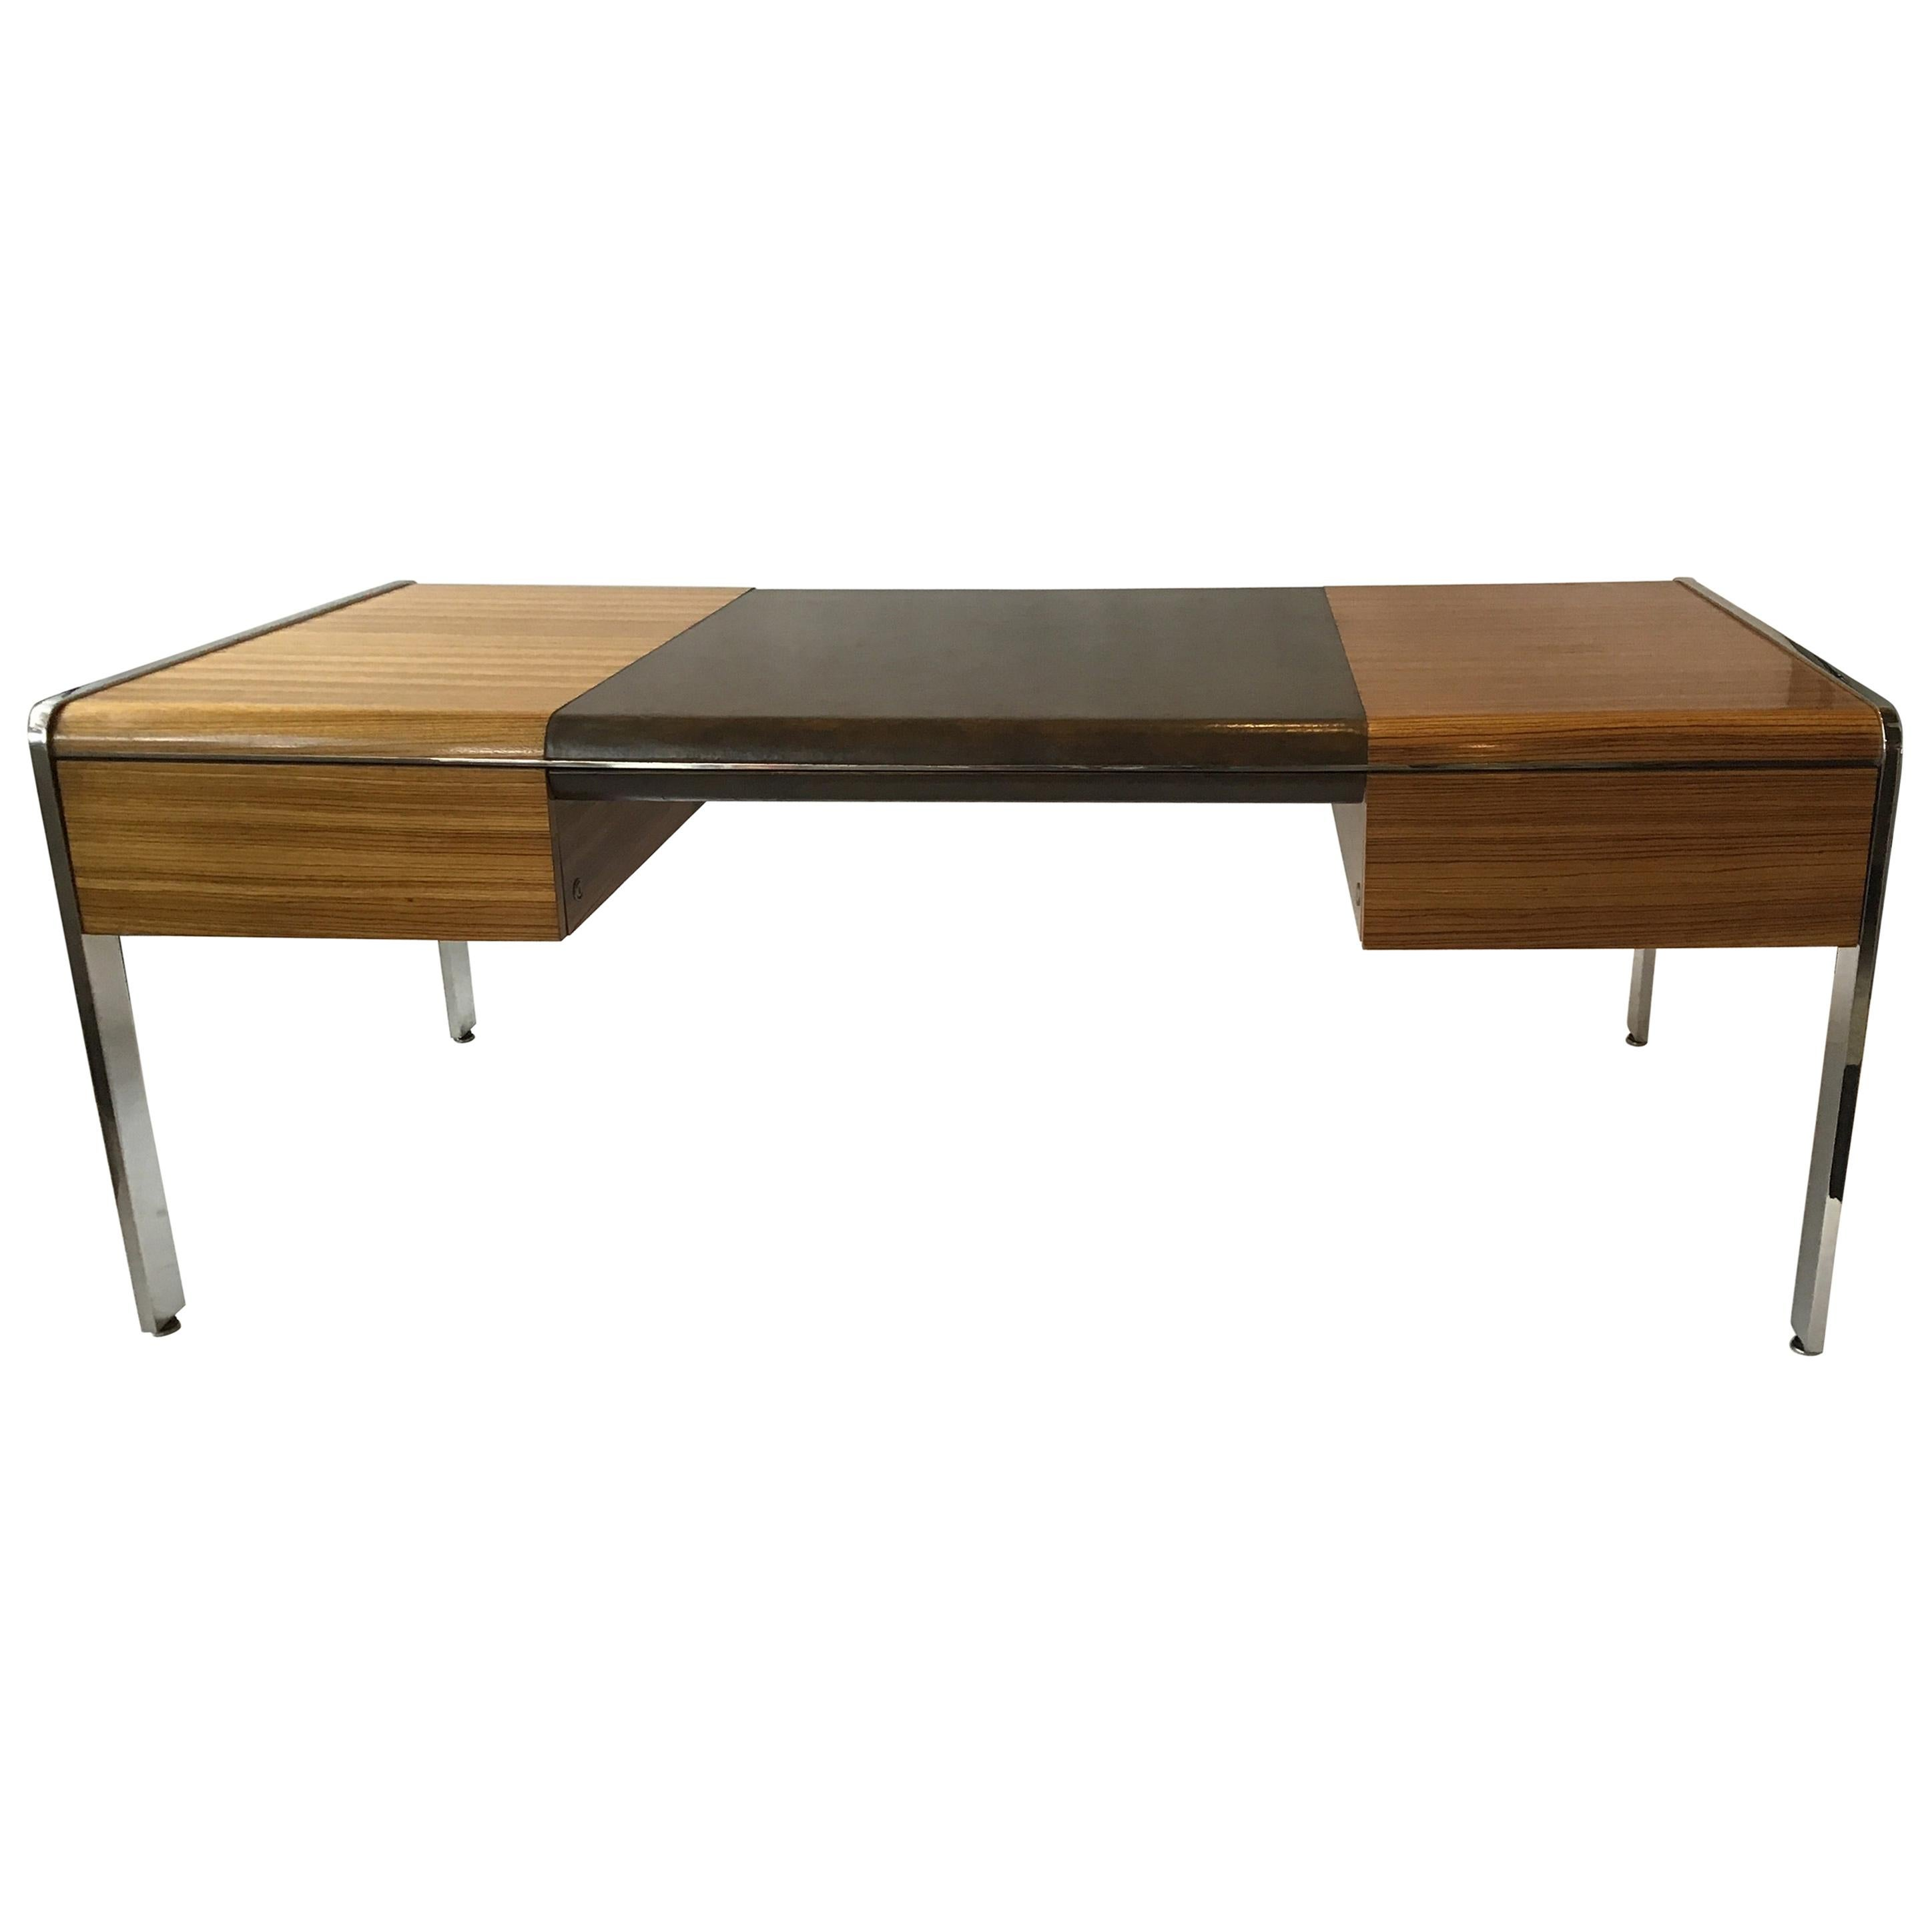 1970s Large Zebra Wood and Chrome Desk by Leon Rosen for Pace